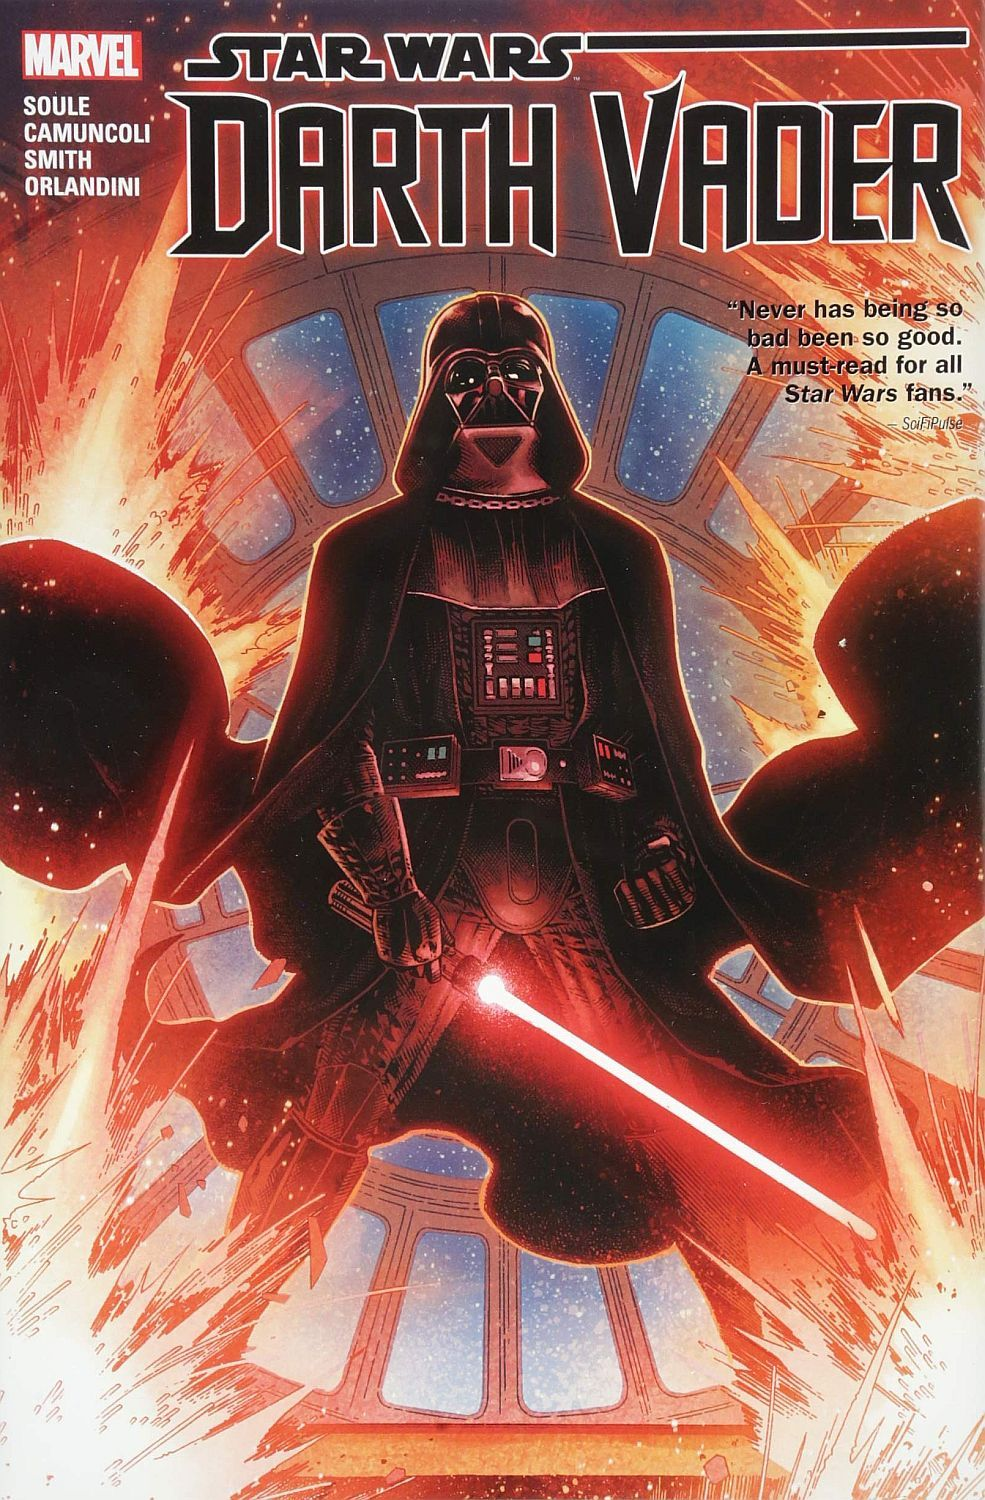 Star Wars Darth Vader - Dark Lord of the Sith Vol. 1 - 1